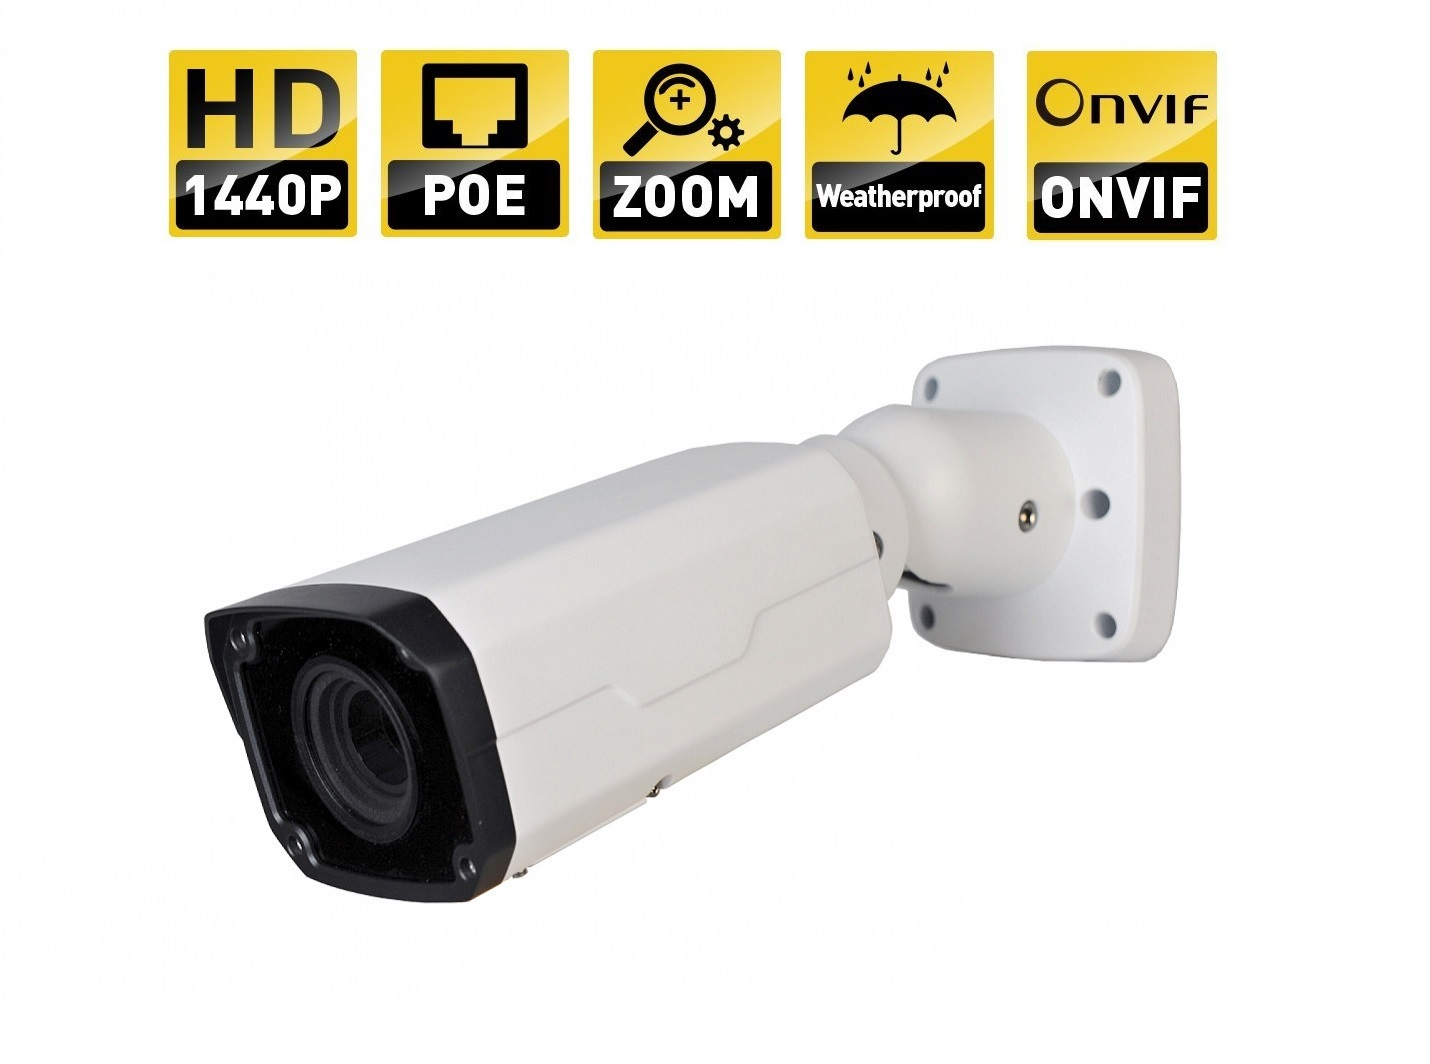 IPC2324EBR-DPZ28 4MP Motorized VF Network IR Bullet Camera